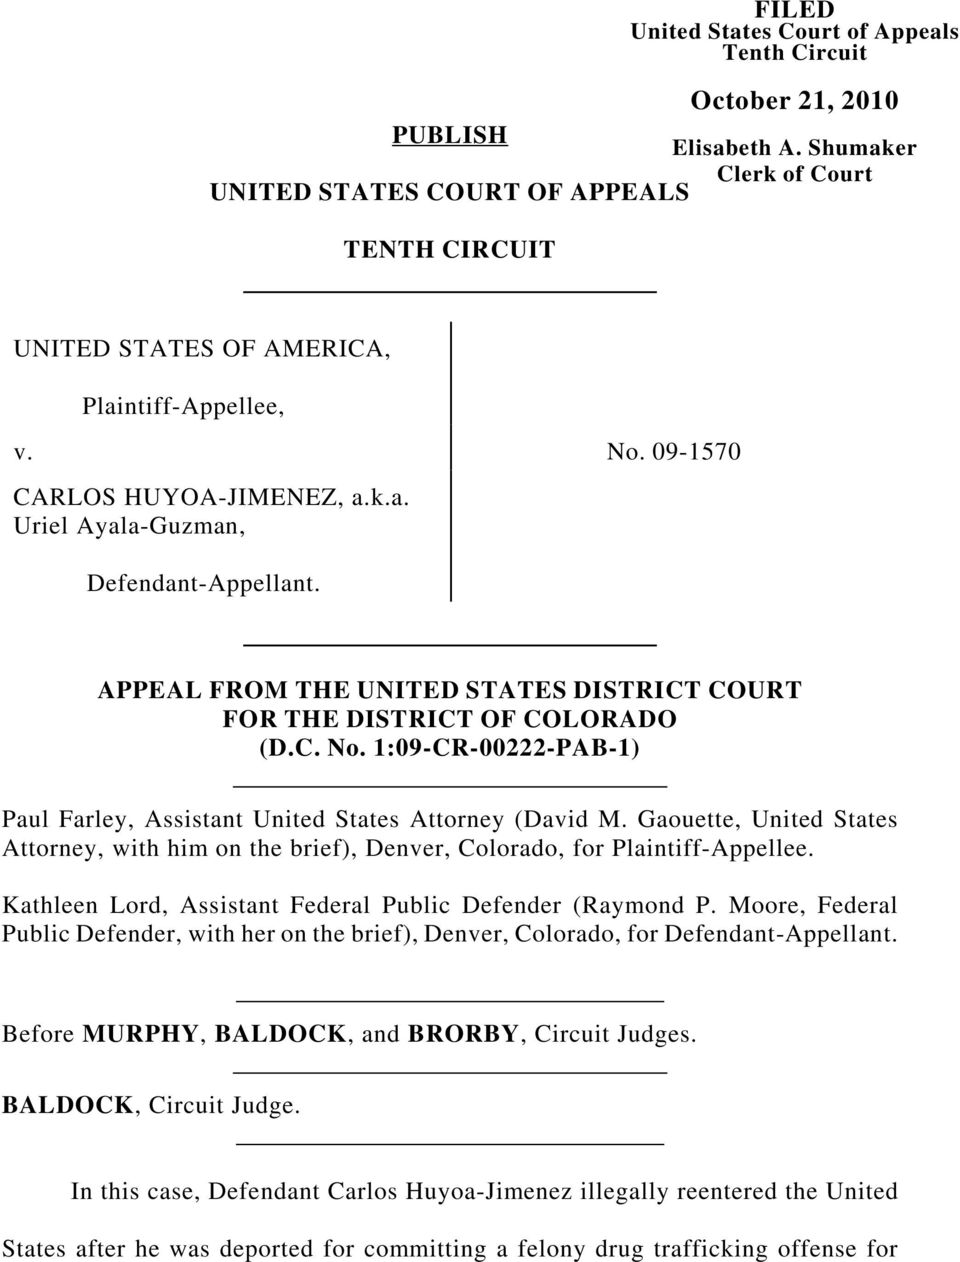 APPEAL FROM THE UNITED STATES DISTRICT COURT FOR THE DISTRICT OF COLORADO (D.C. No. 1:09-CR-00222-PAB-1) Paul Farley, Assistant United States Attorney (David M.